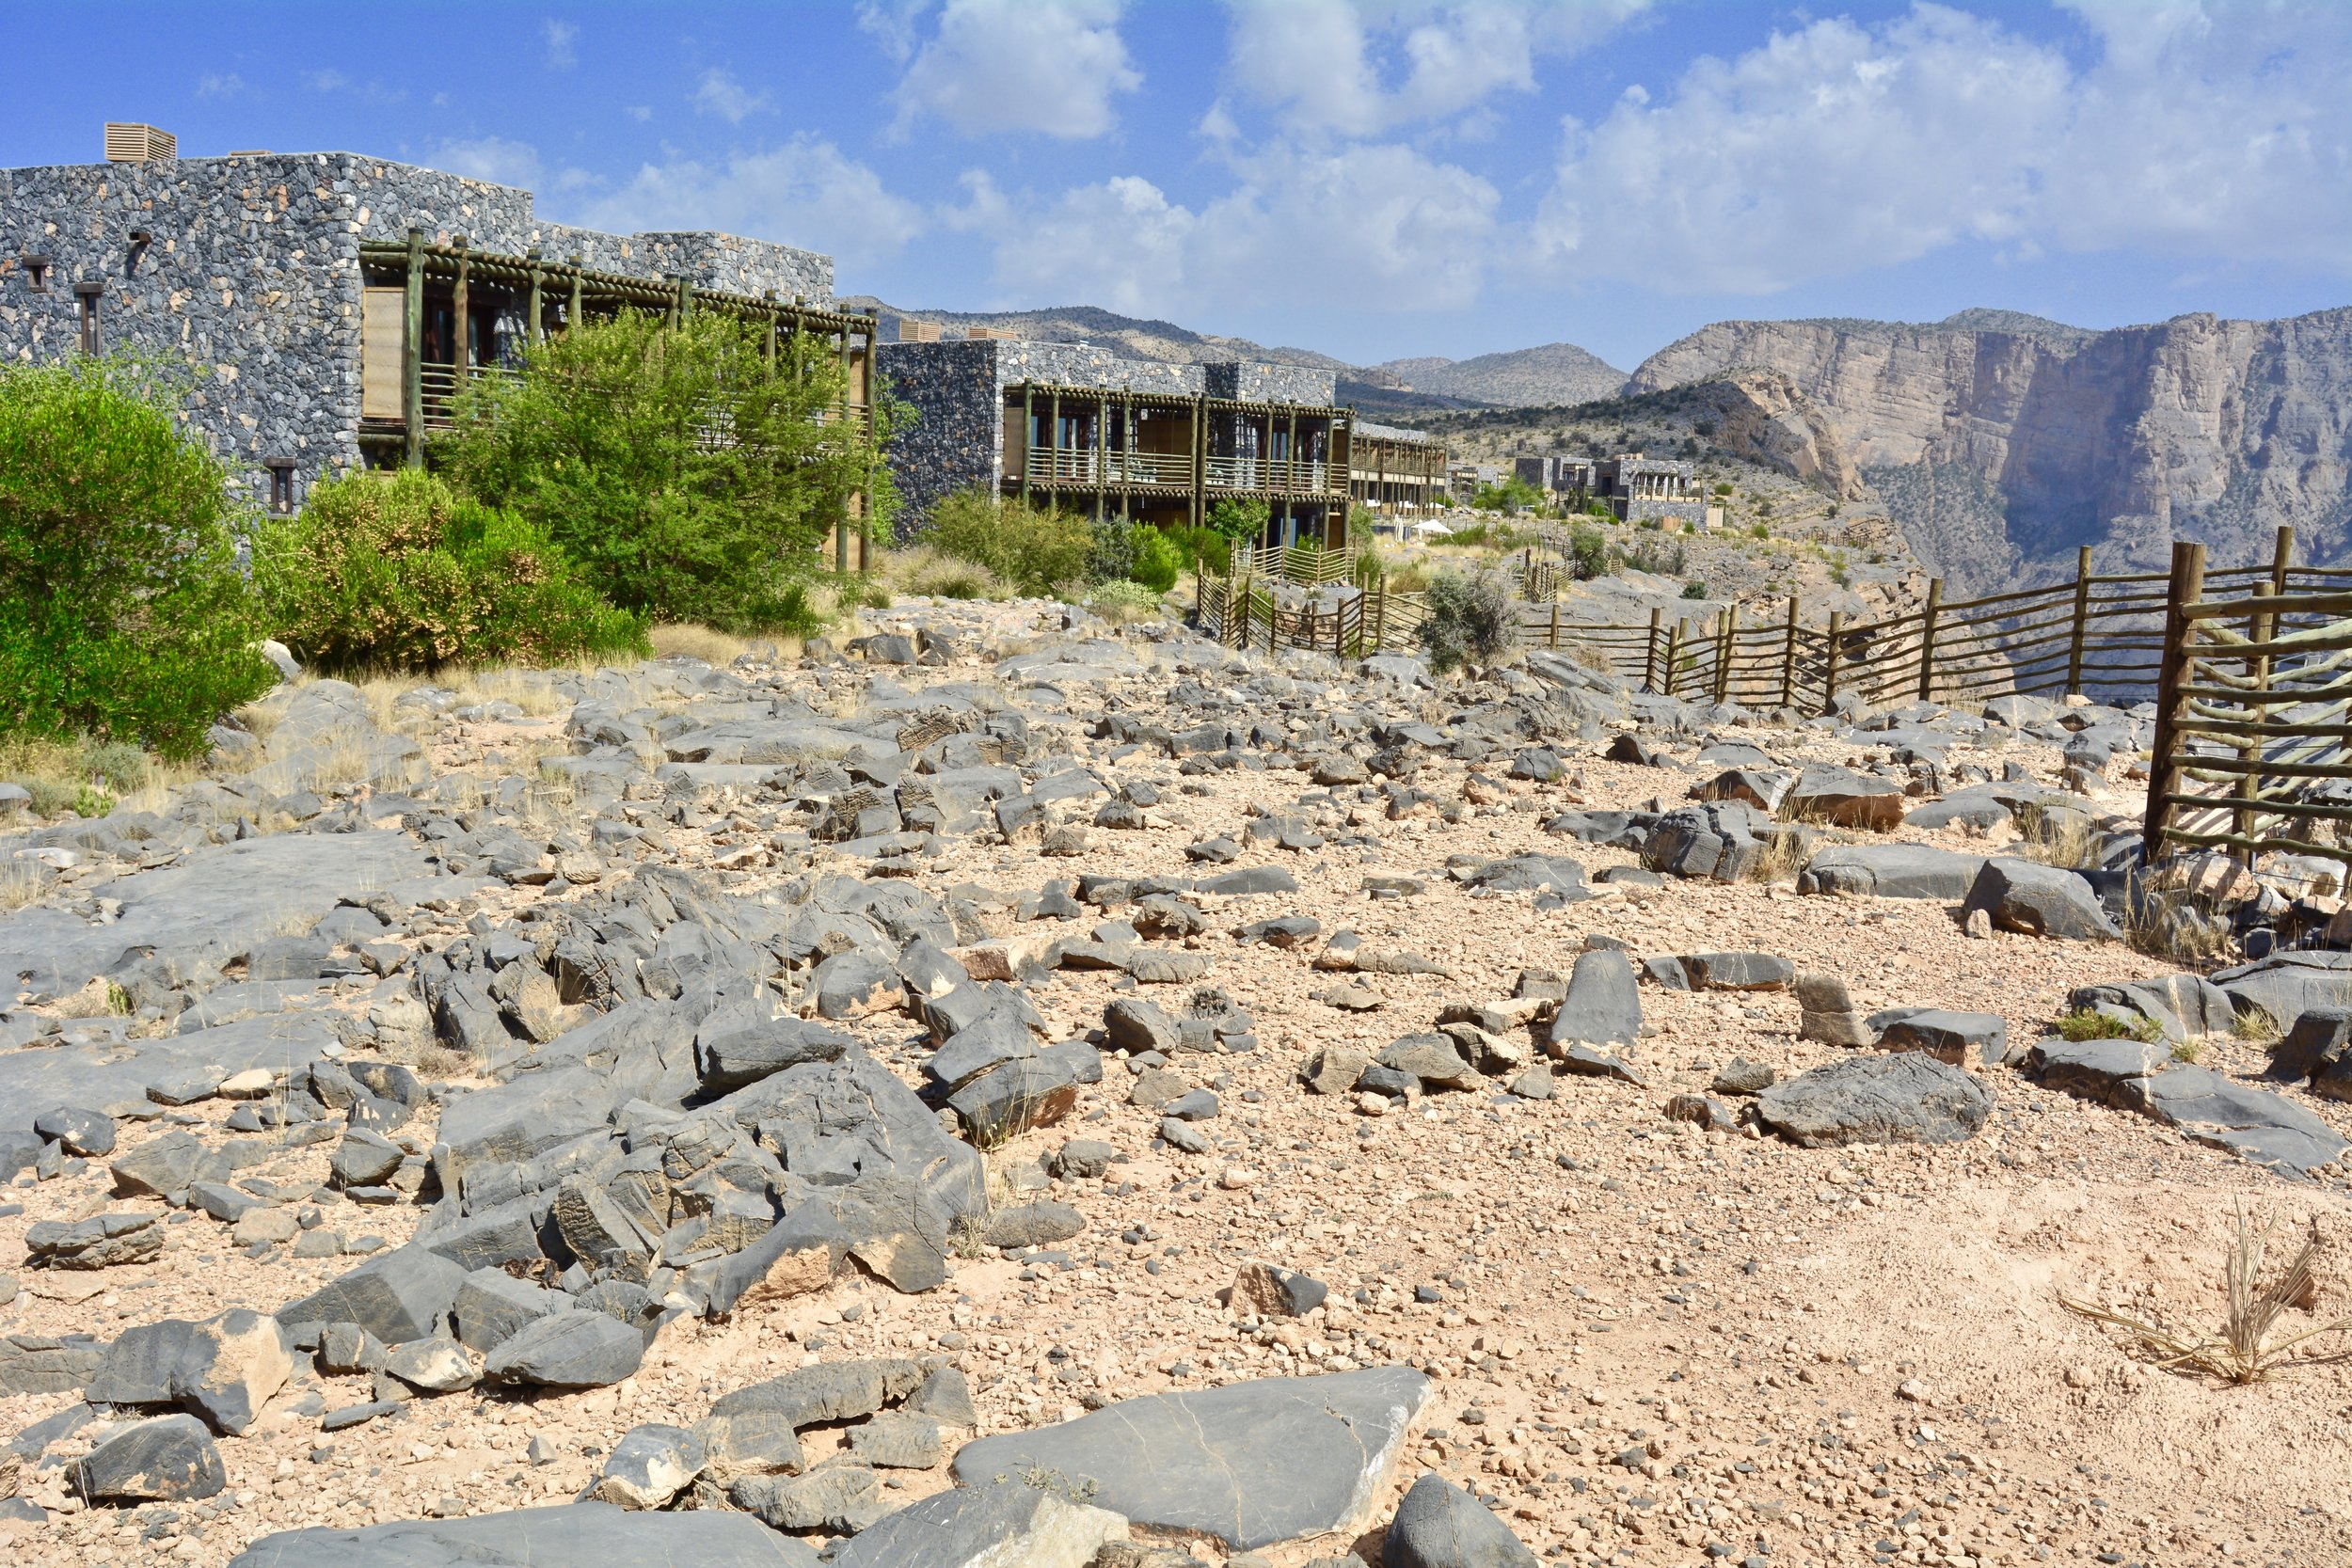 Traditional Omani Village (Alila Jabal Akhdar)